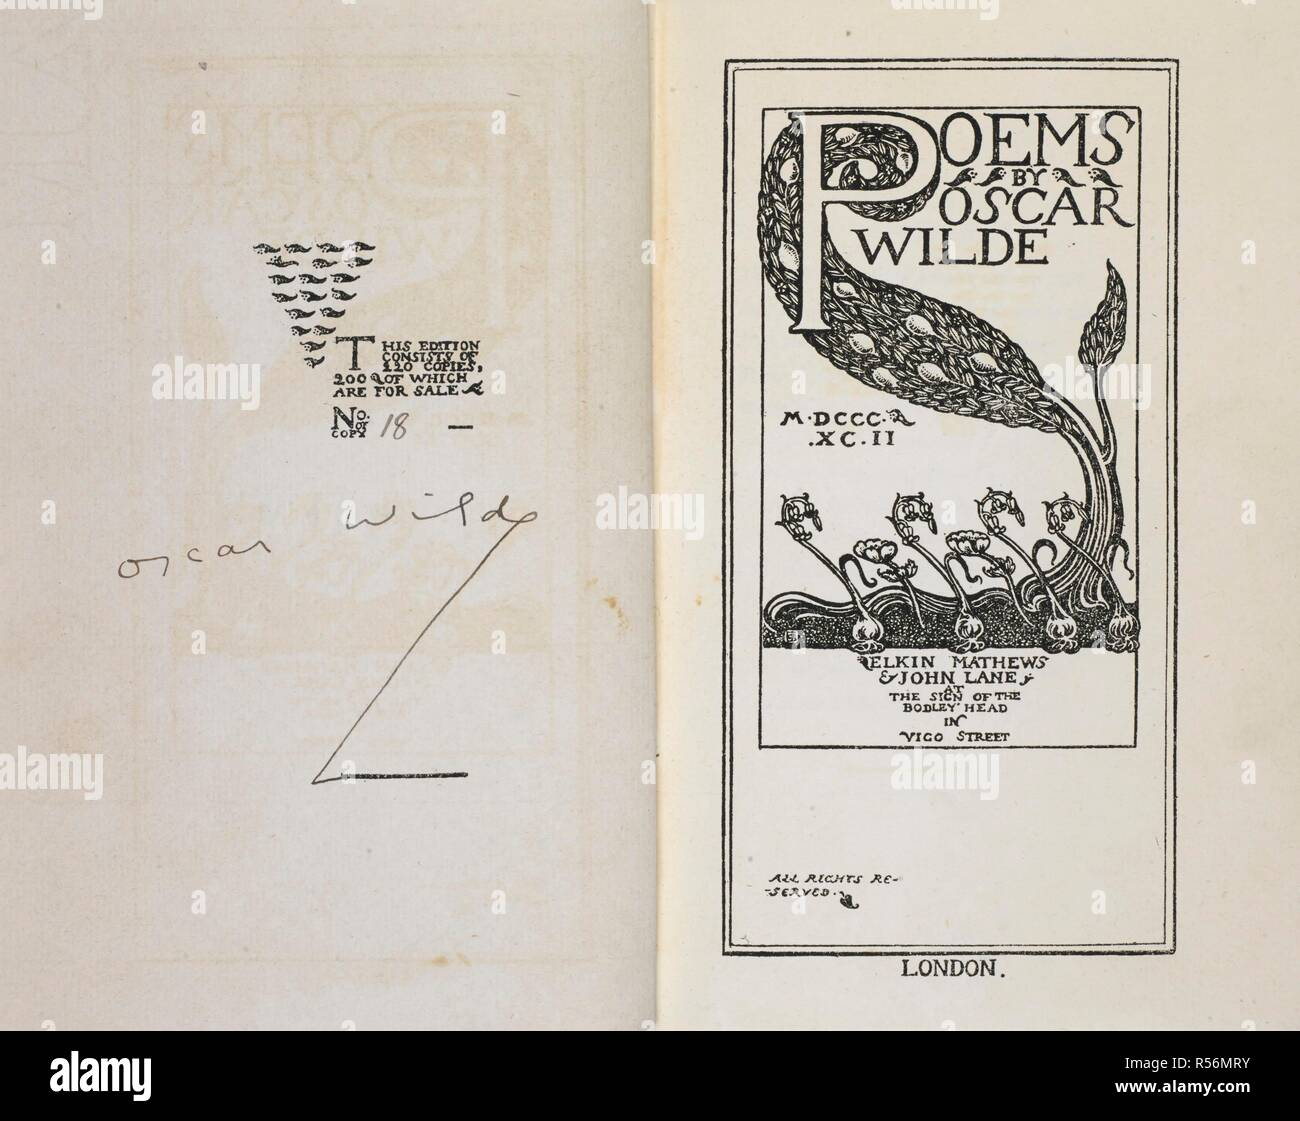 Signature Of Oscar Wilde And An Illustrated Title Page